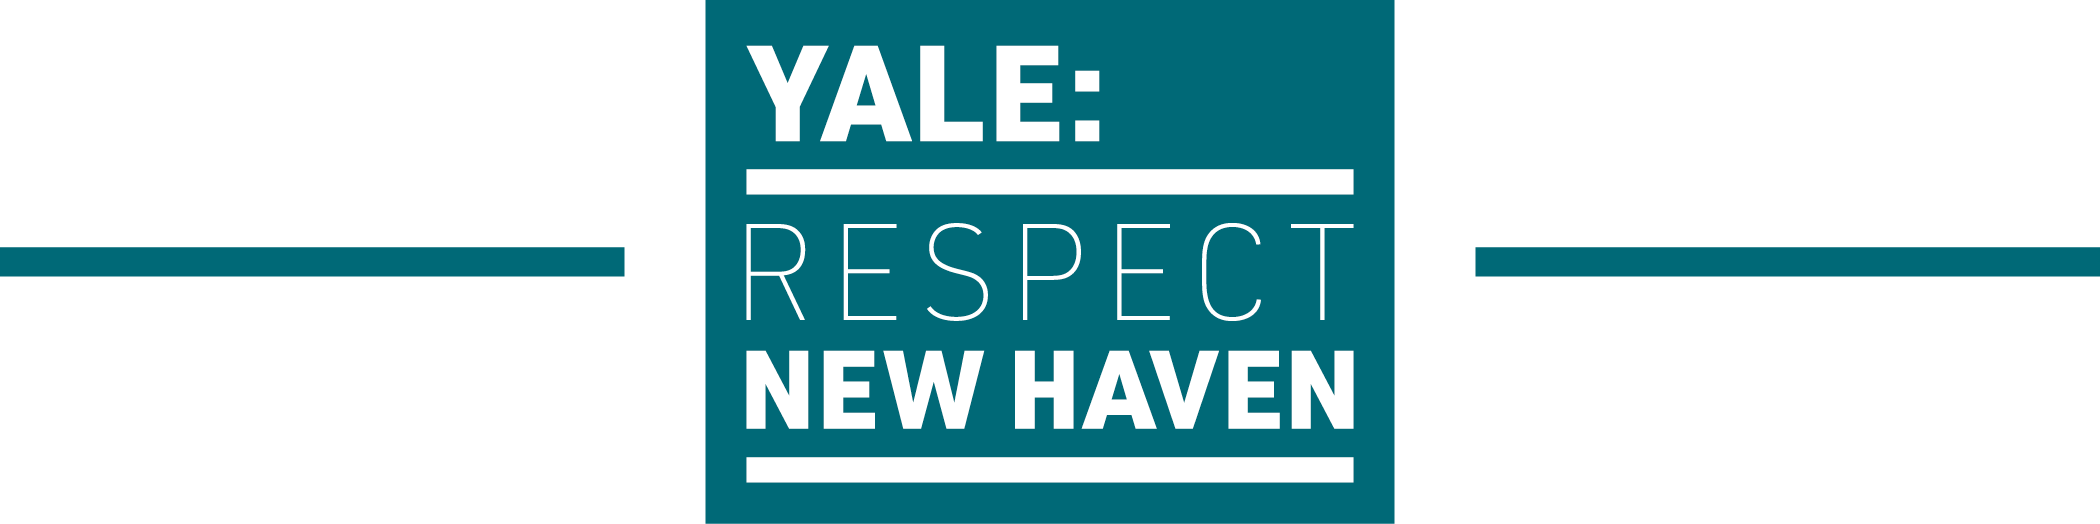 Yale: Respect New Haven